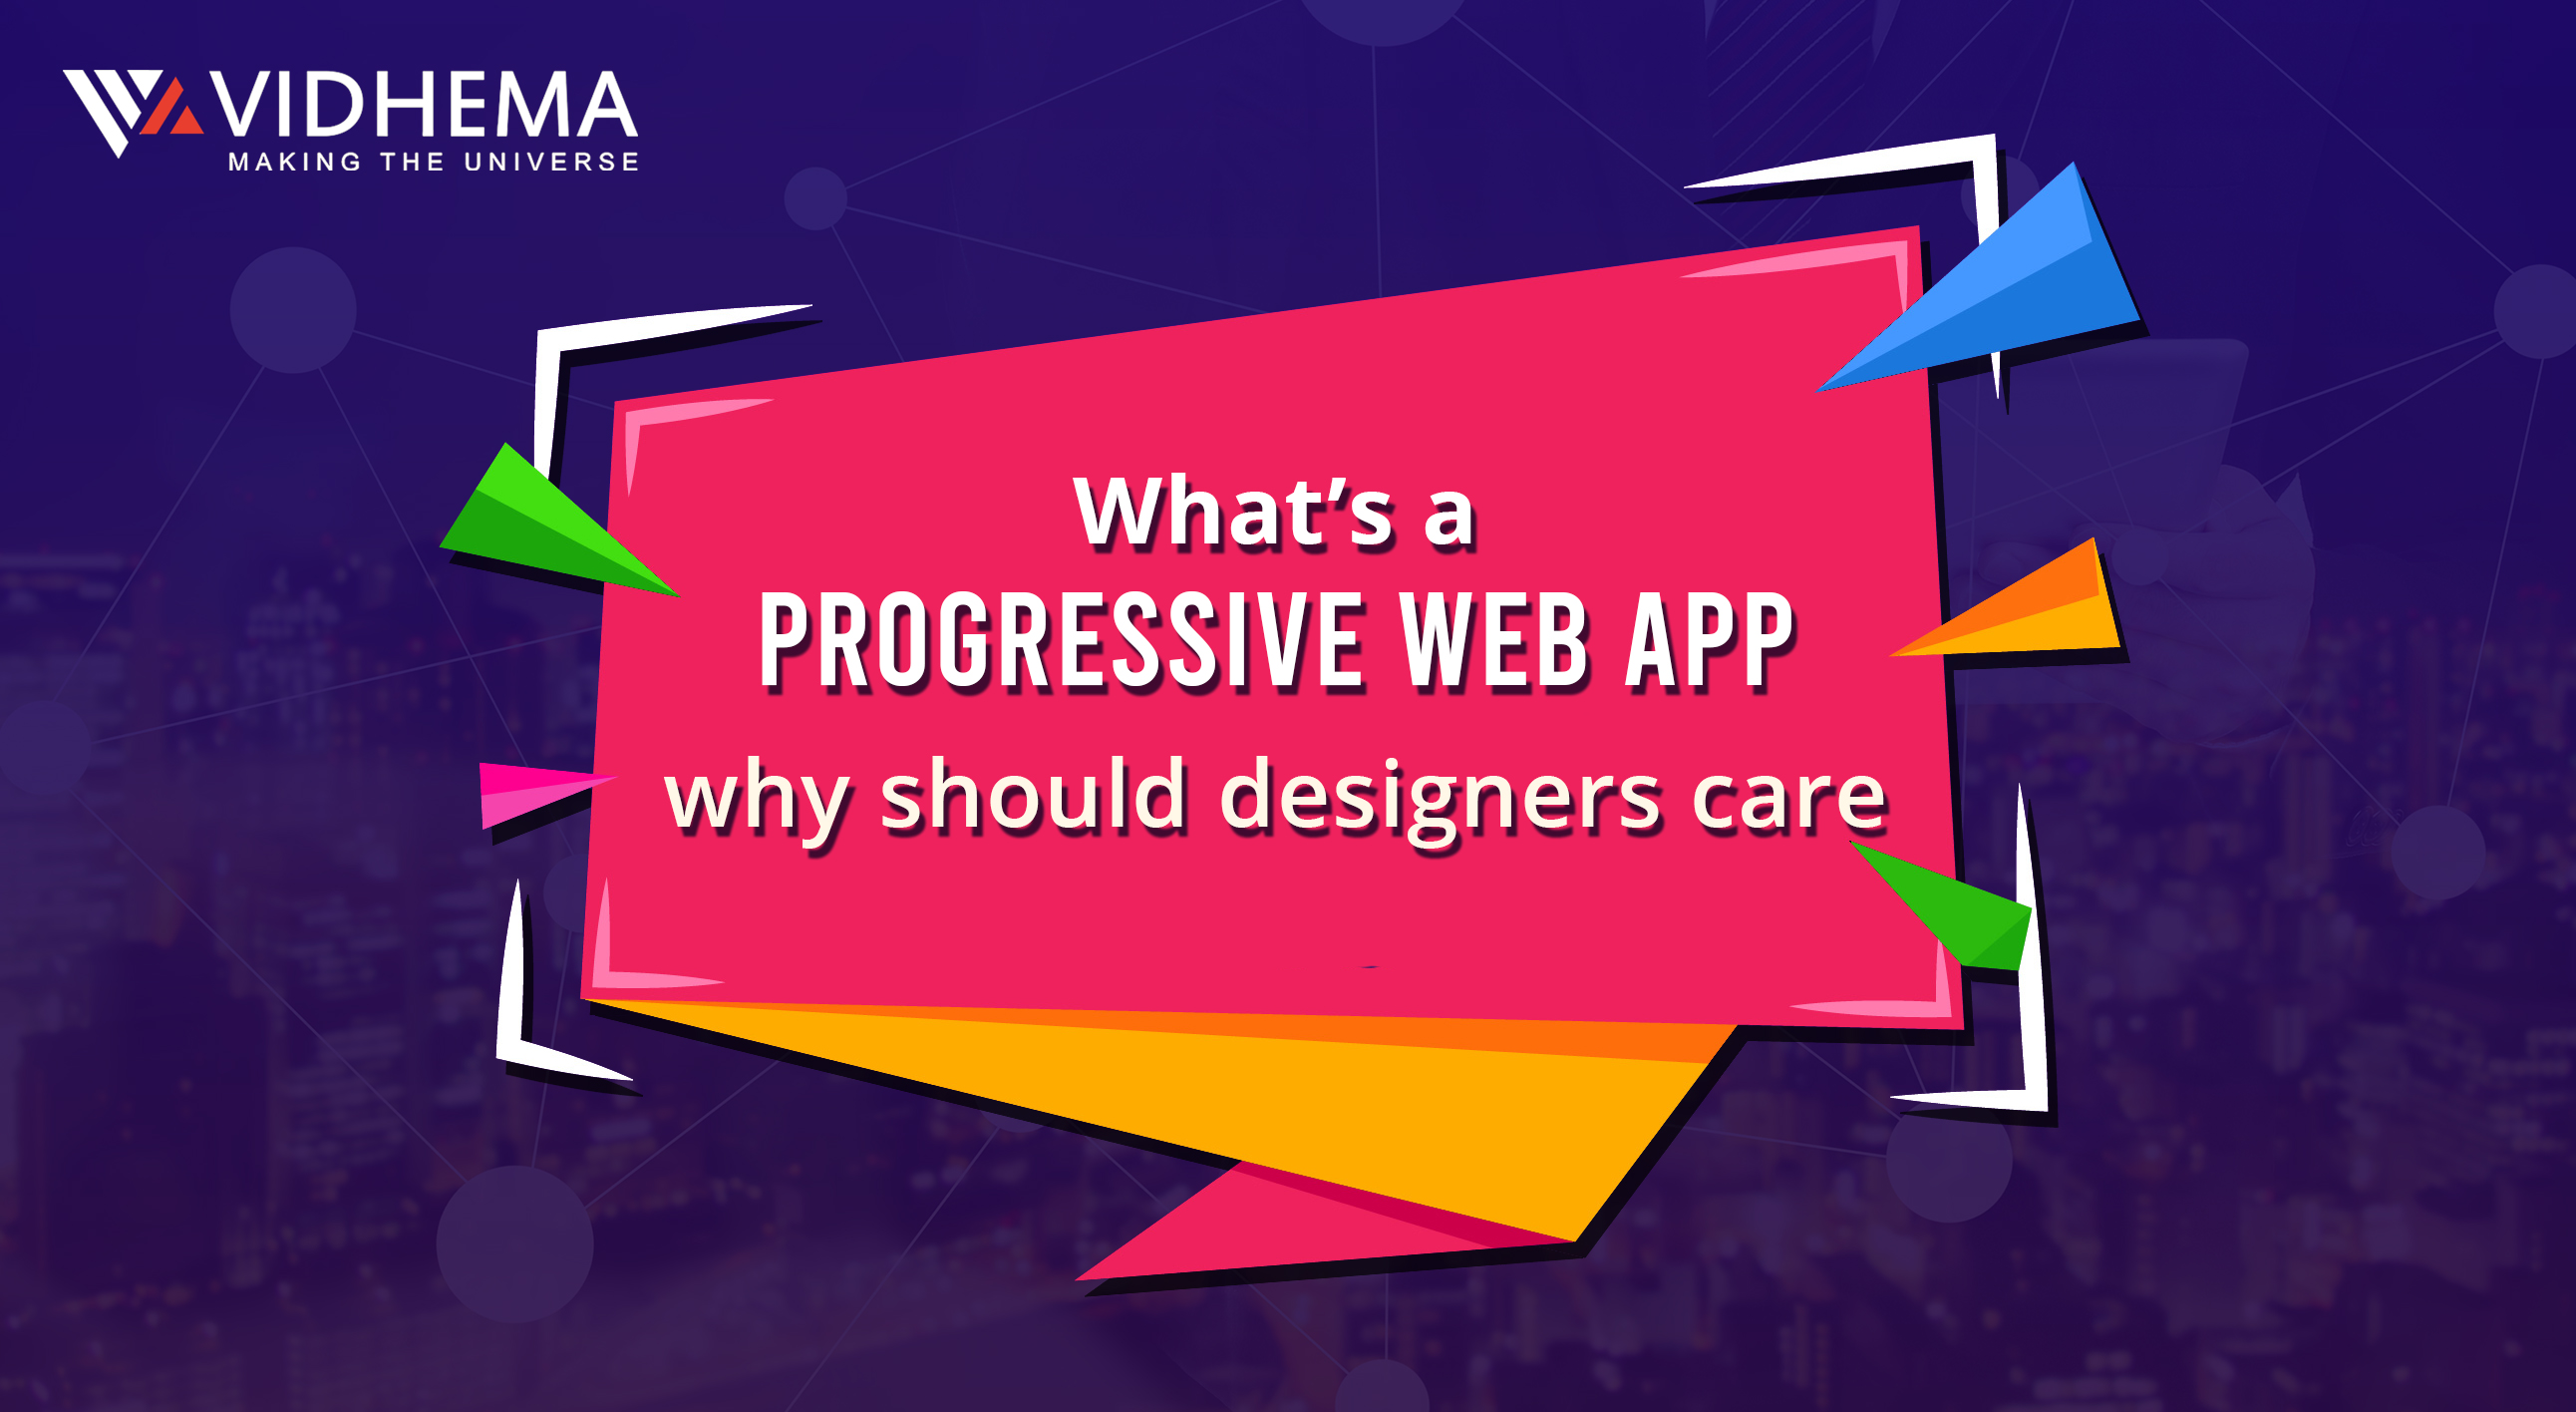 What's a progressive web app, and why should designers care?